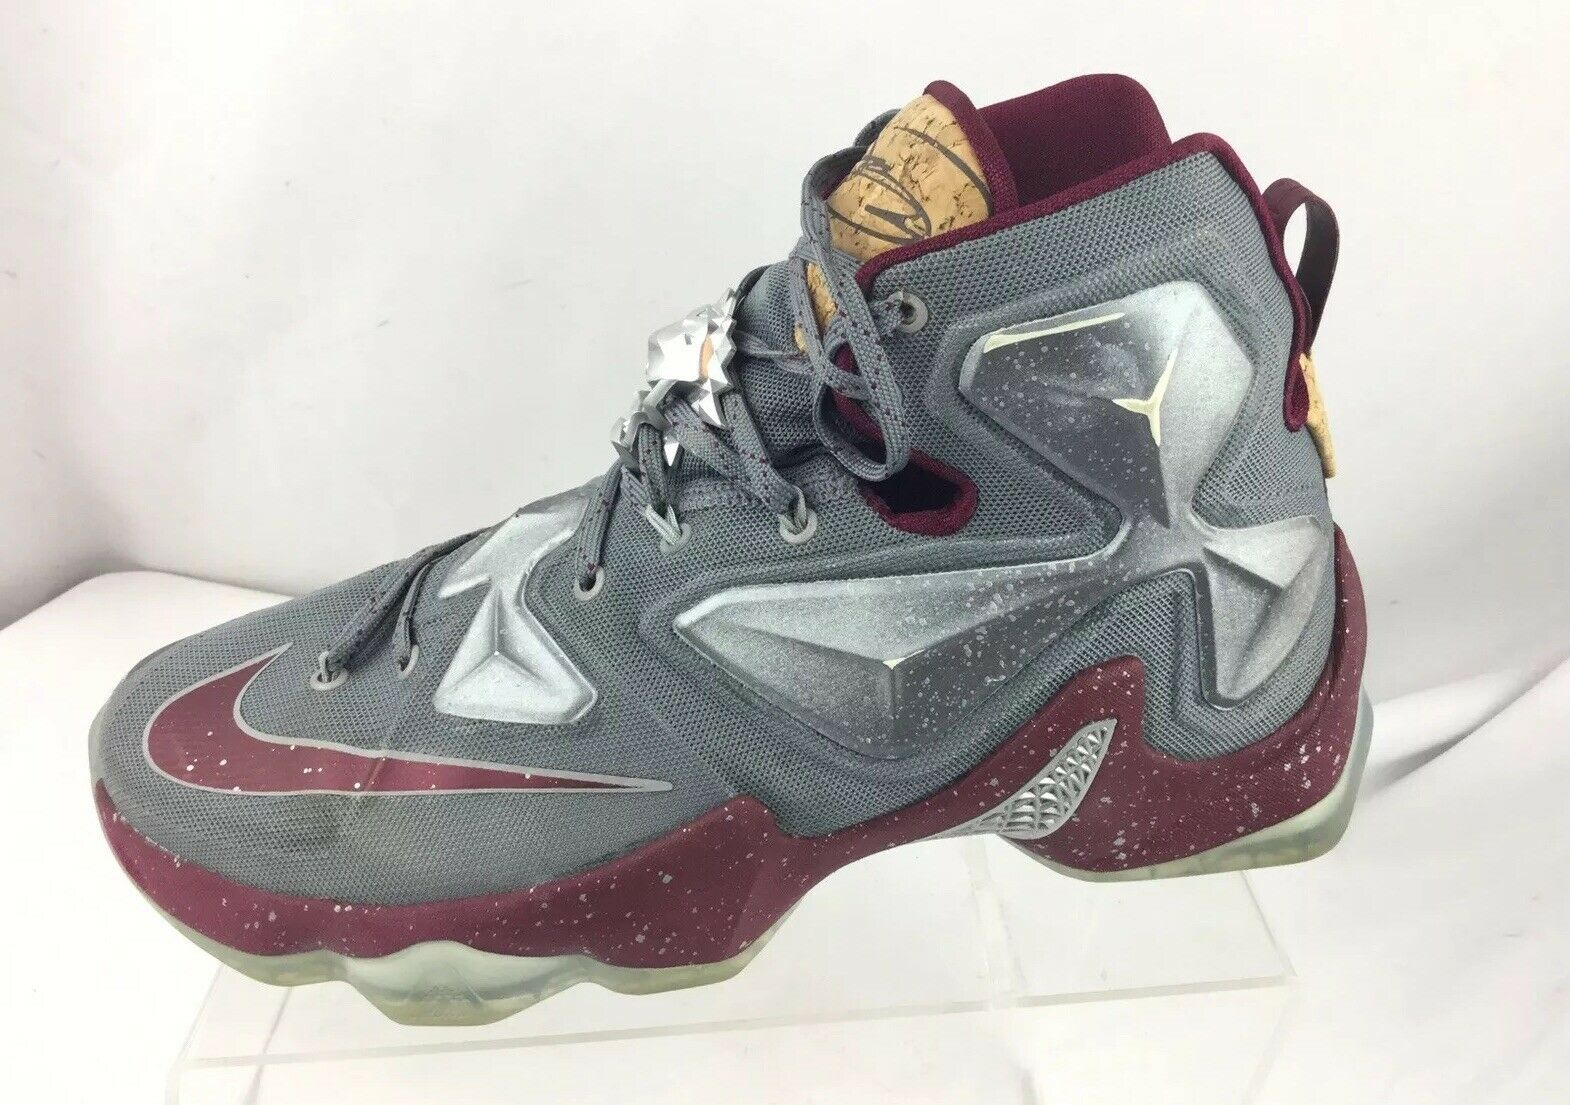 NIKE MEN BASKETBALL SHOES LEBRON XIII 13 LIMITED 823300 060 GREY GARNET 9